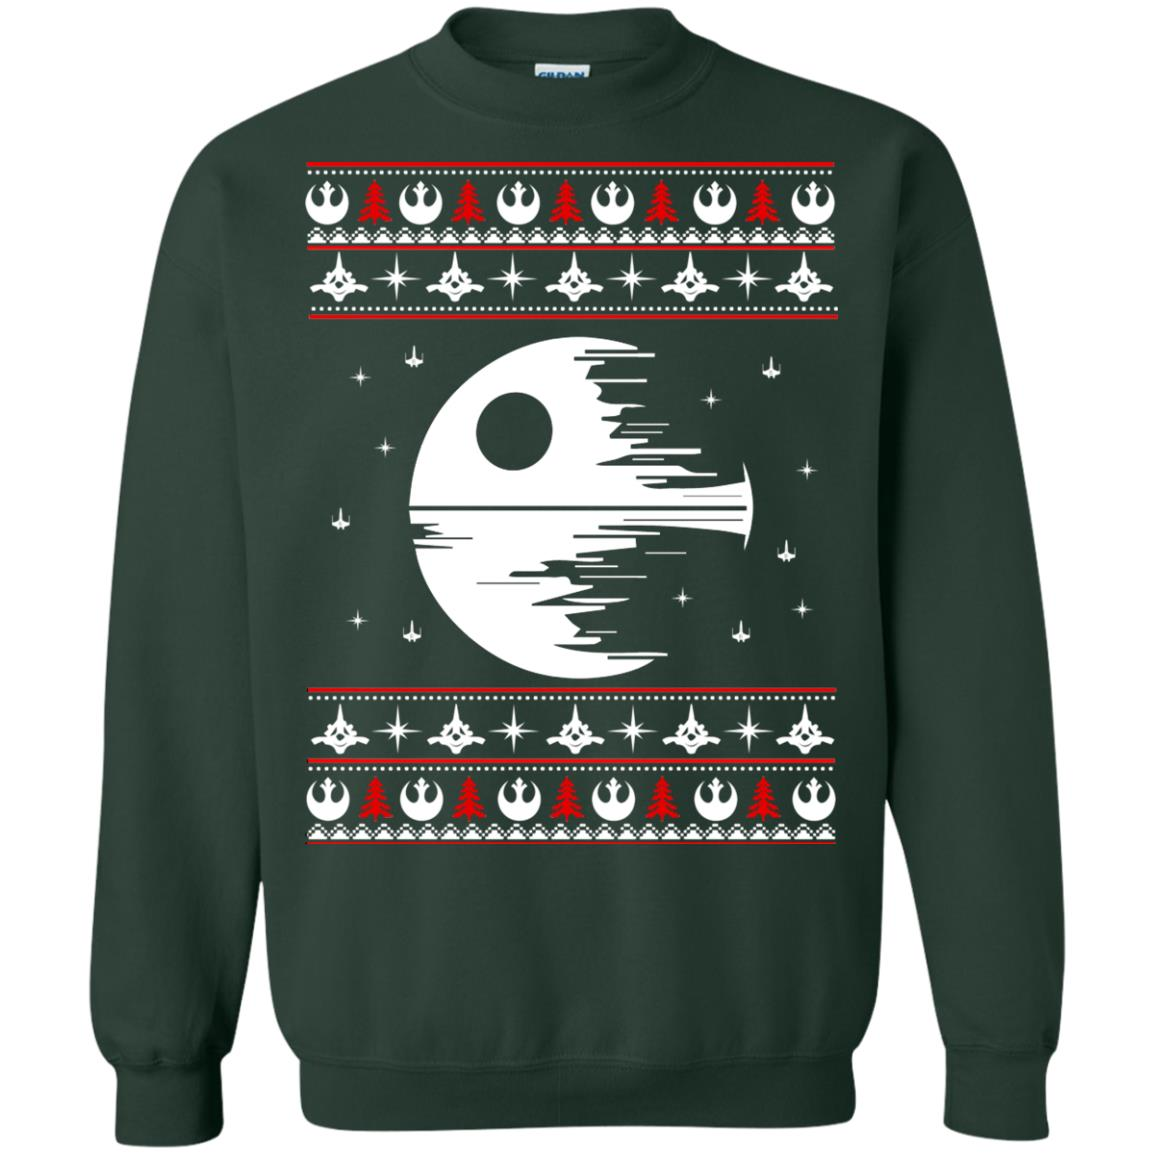 image 1779 - Star Wars Death Star Darth Vader Ugly Sweater, Shirt